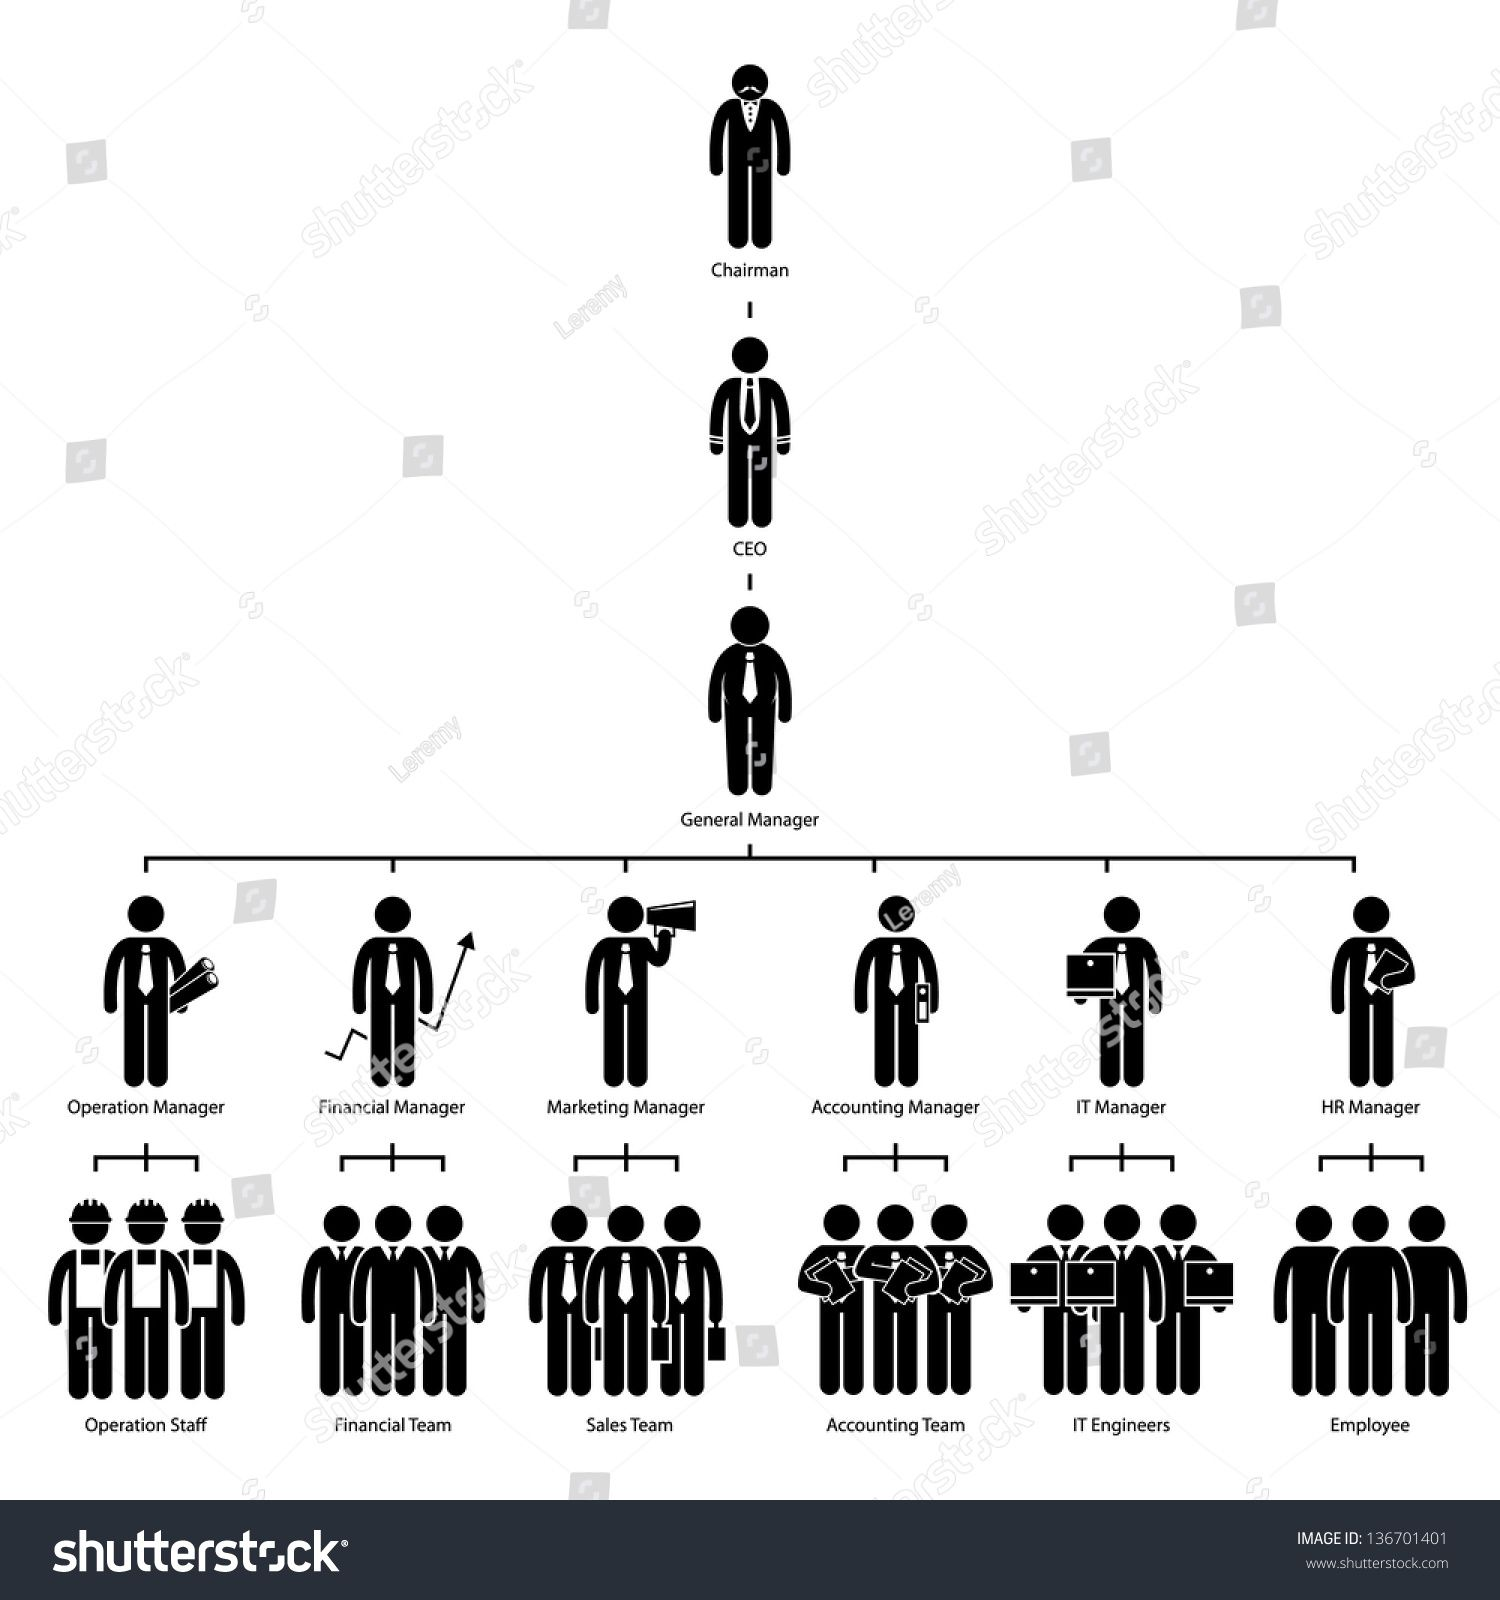 Organization Chart Tree Company Corporate Hierarchy Chairman Ceo Manager Staff Employee Worker Stick Figur Organization Chart Tree Company Organizational Chart